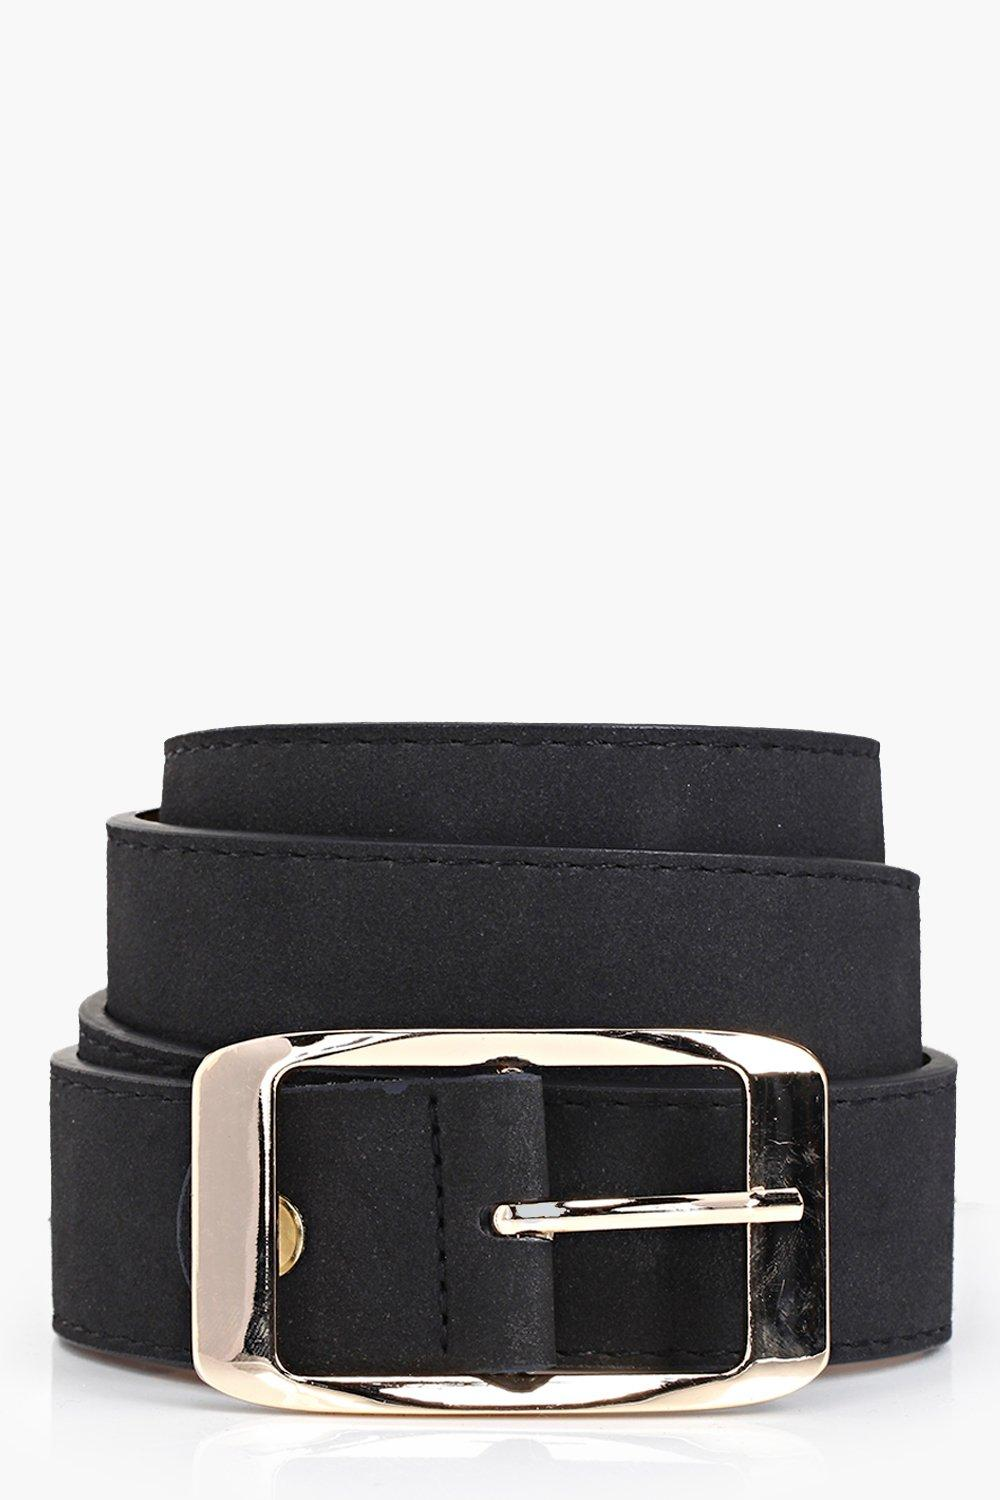 Suedette Chunky Boyfriend Belt - black - Customise